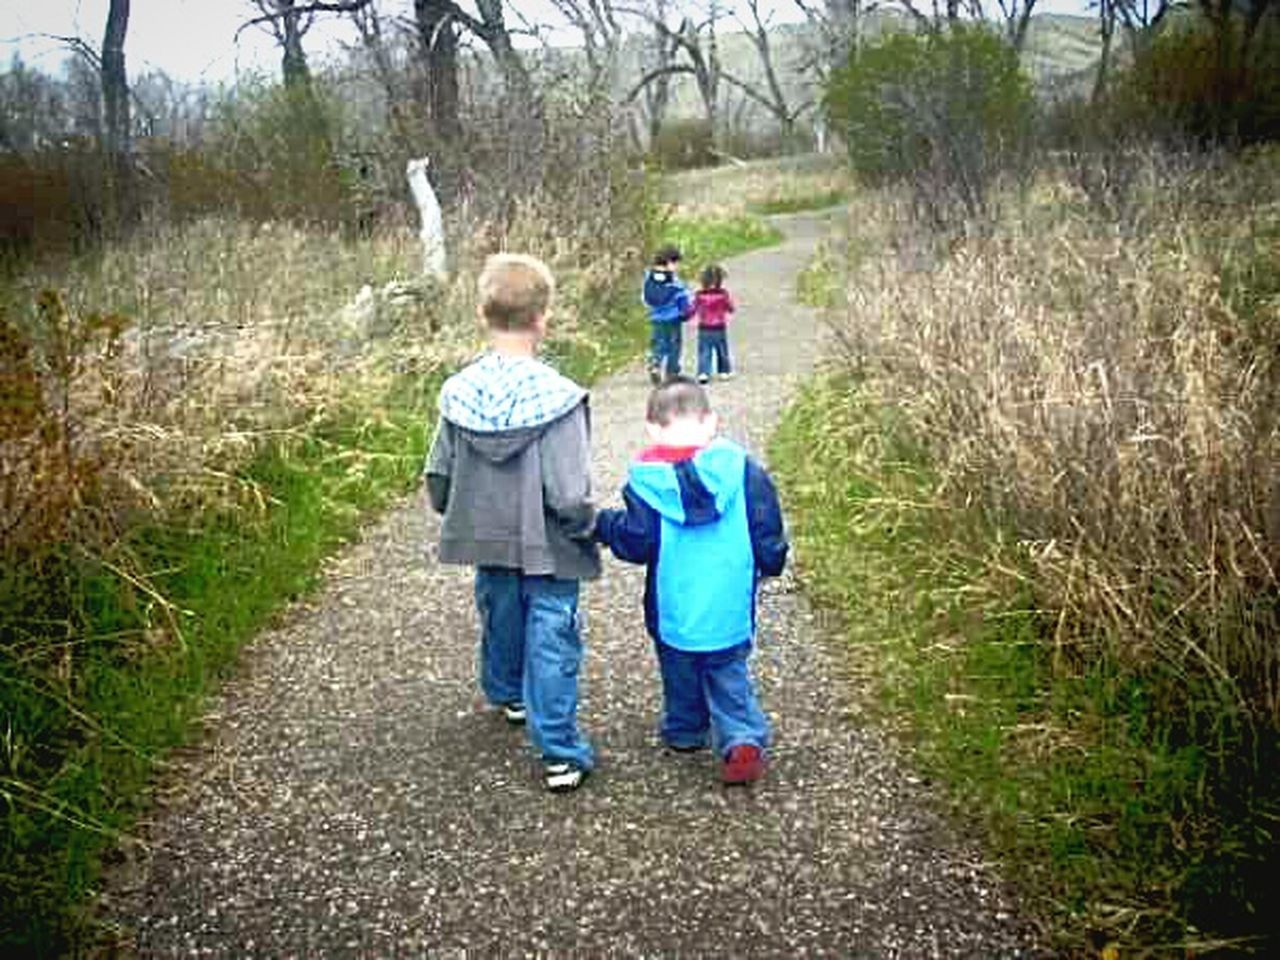 The ants go marching two by two. . . Family Walking Childhood Togetherness Nature Outdoors My Son ❤ Memories Too Sweet Cute Kids Momma Moment Lethbridge Happy Cousins ❤